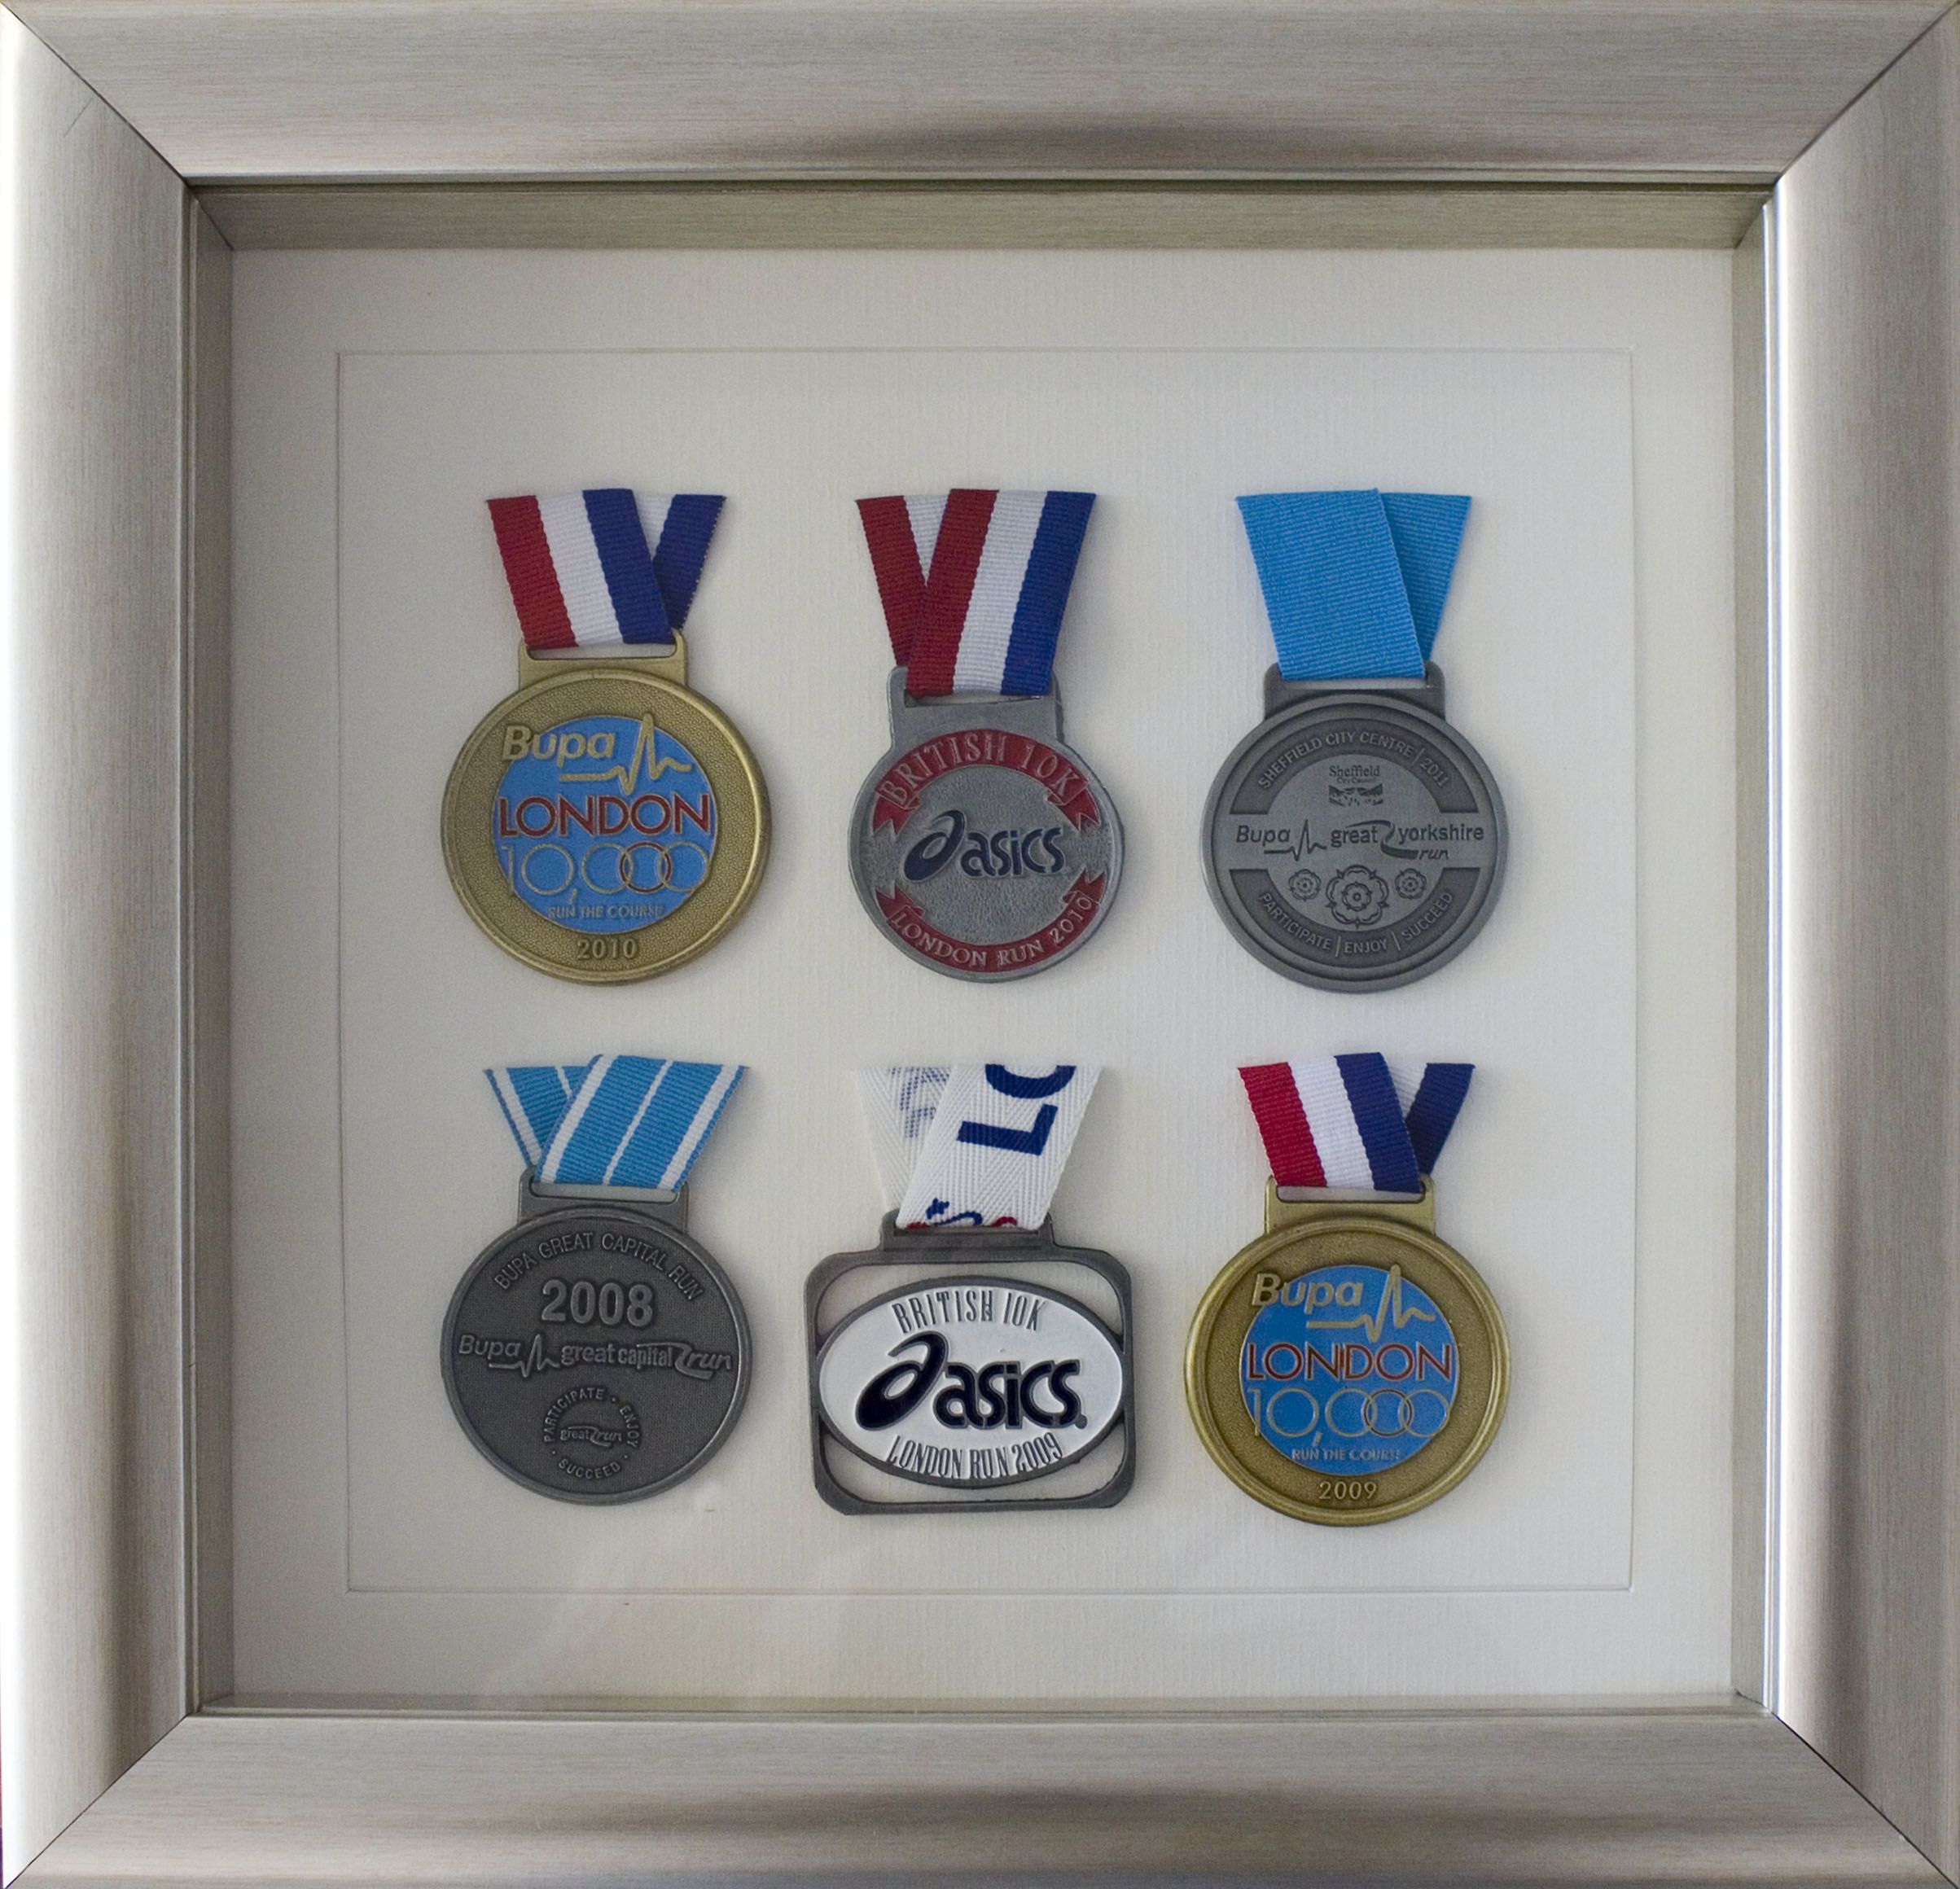 Box frame for medals | Medal display | Pinterest | Box, Display and Room